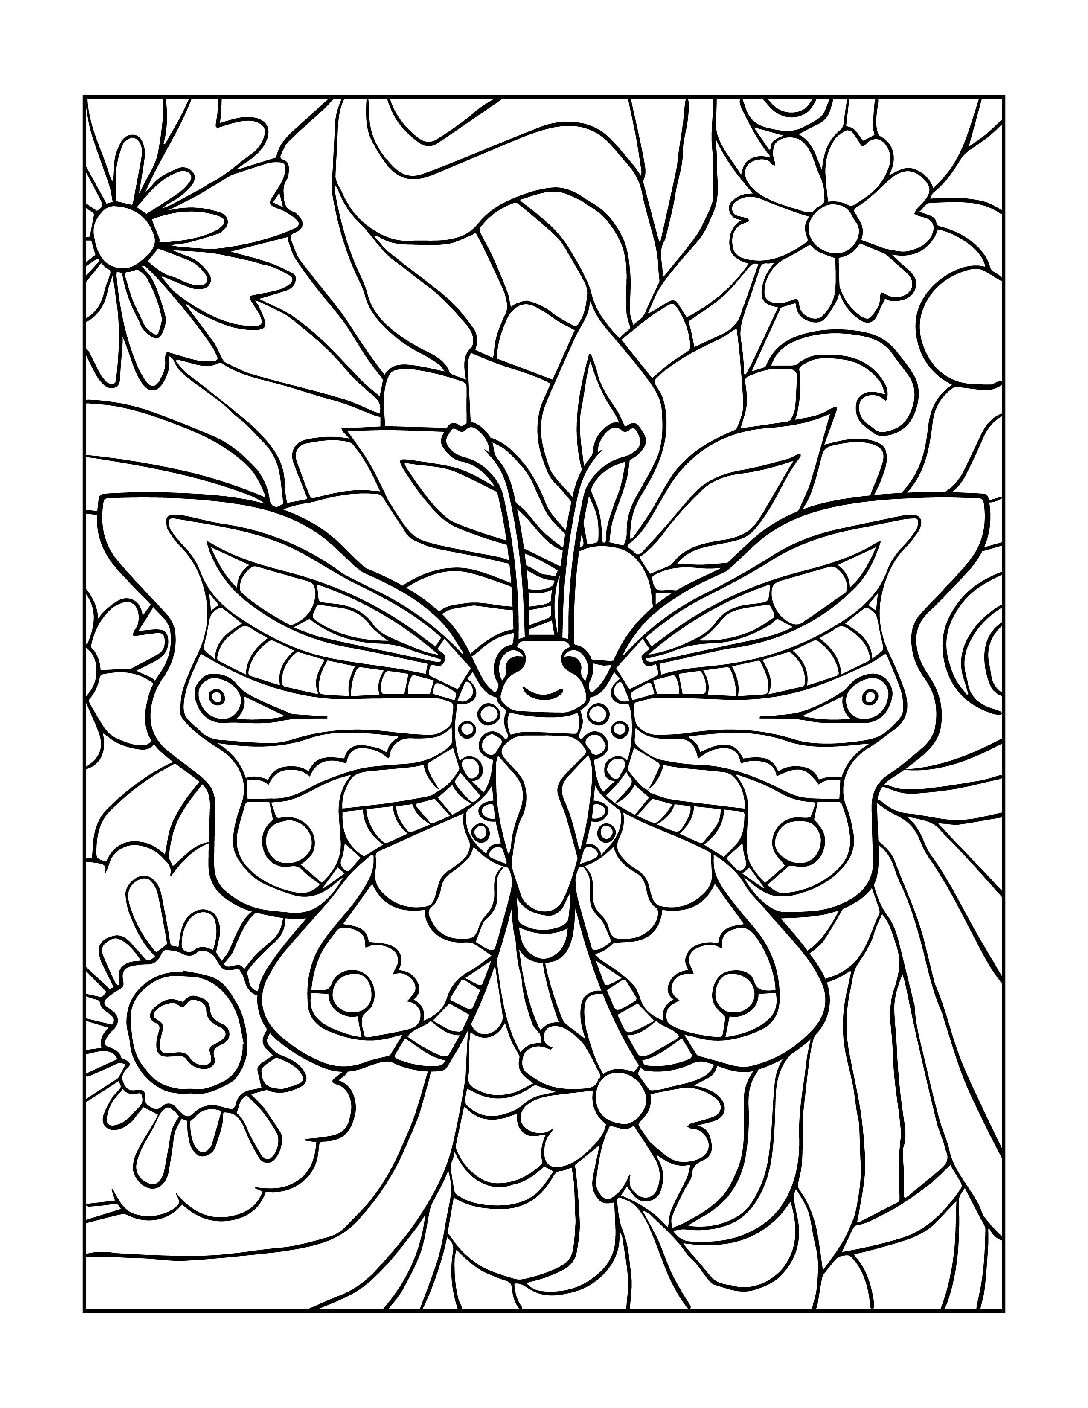 Coloring-Pages_Butterflies-15-01-pdf Free Printable Butterfly Colouring Pages